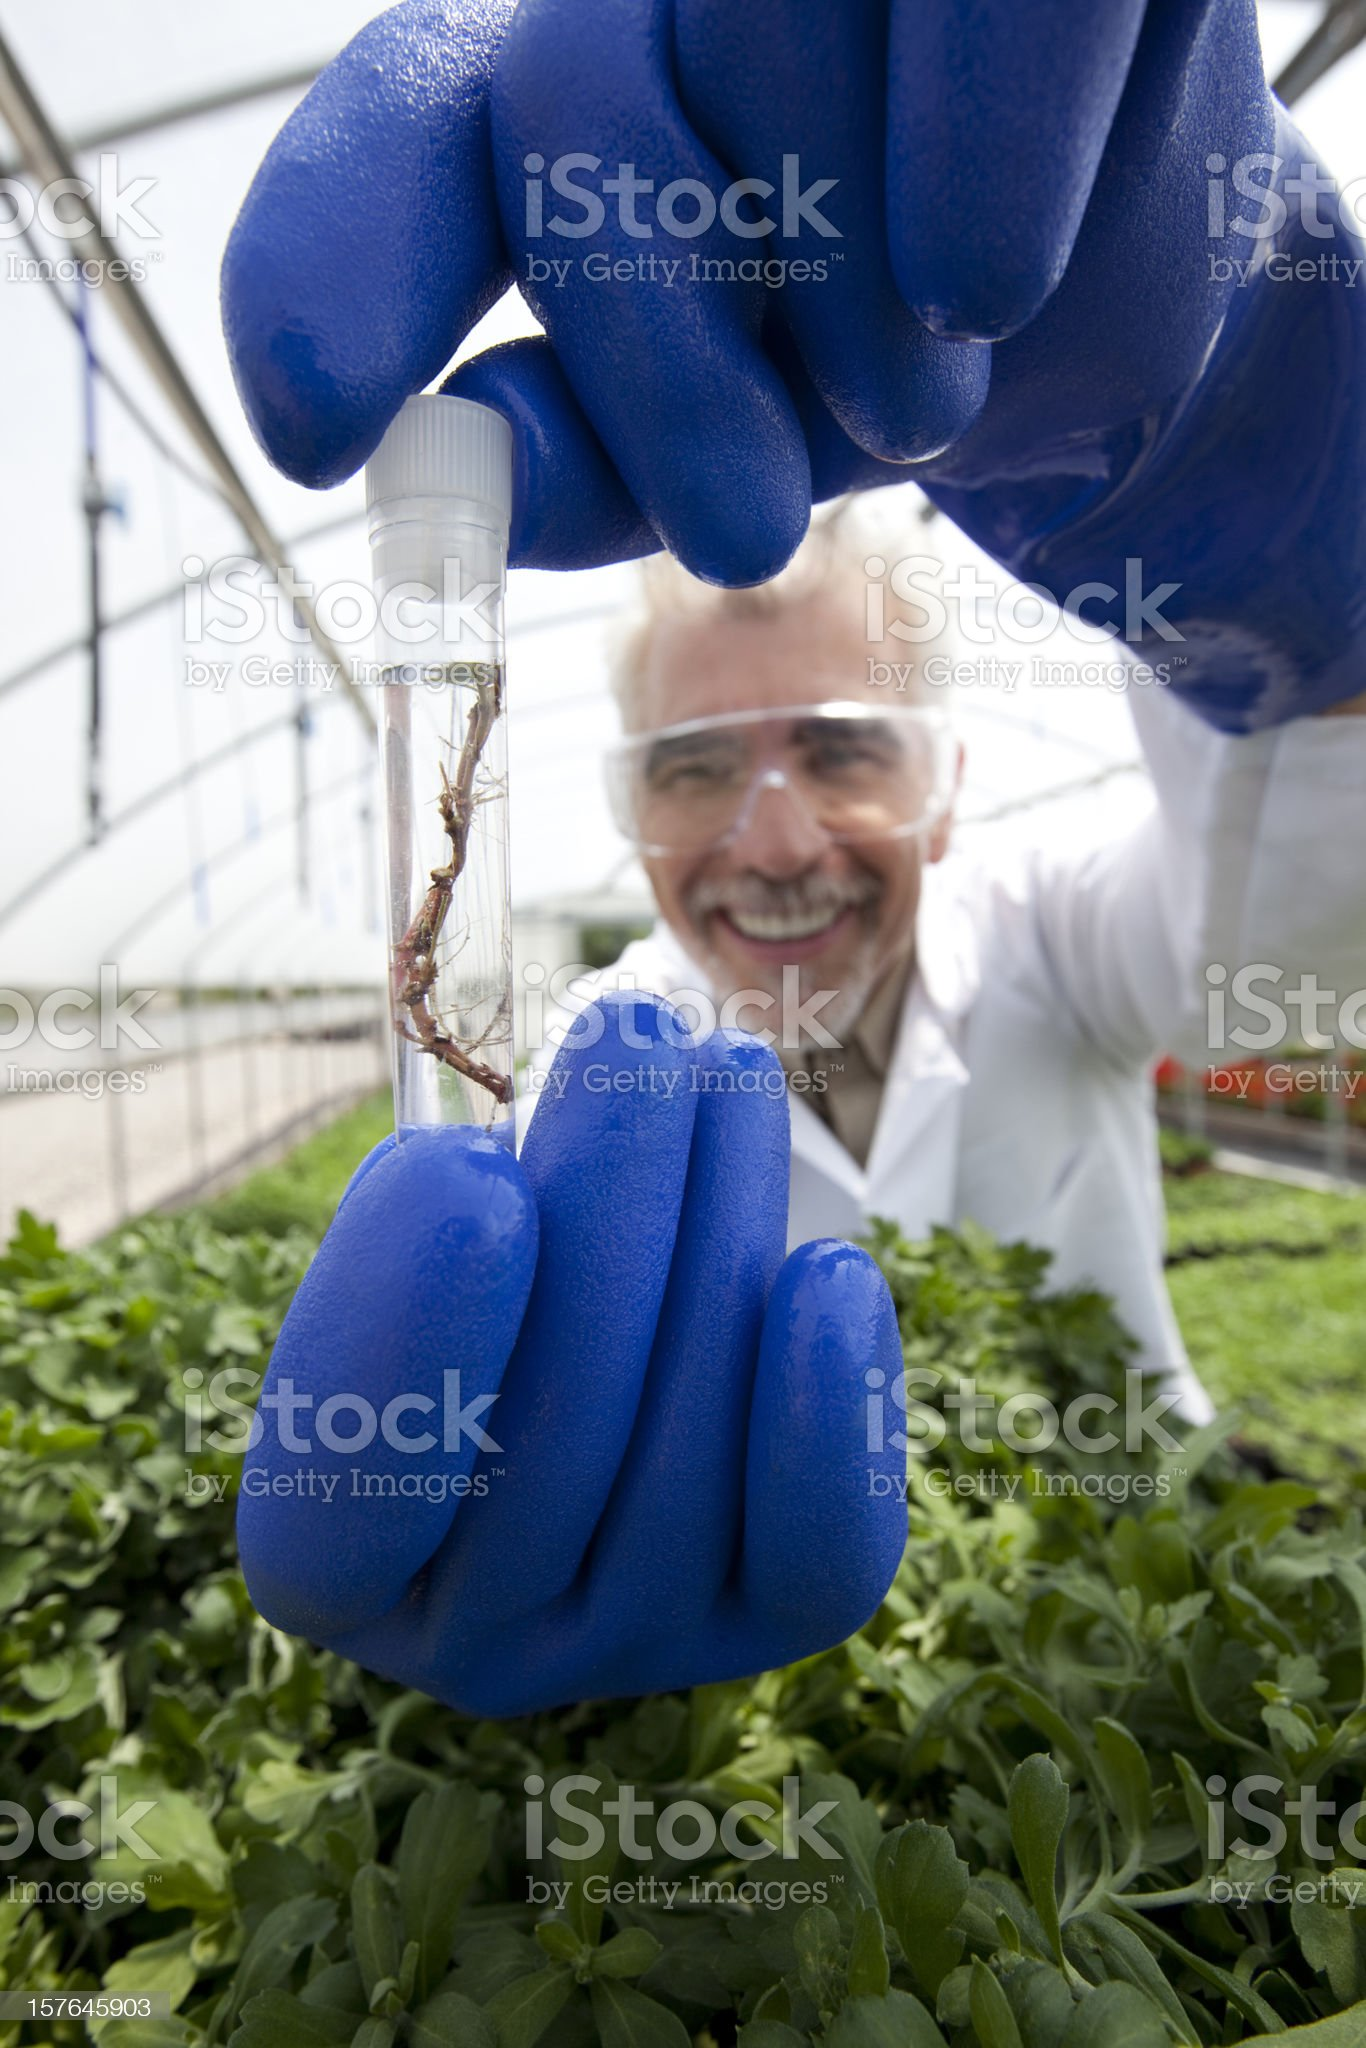 Plant science royalty-free stock photo